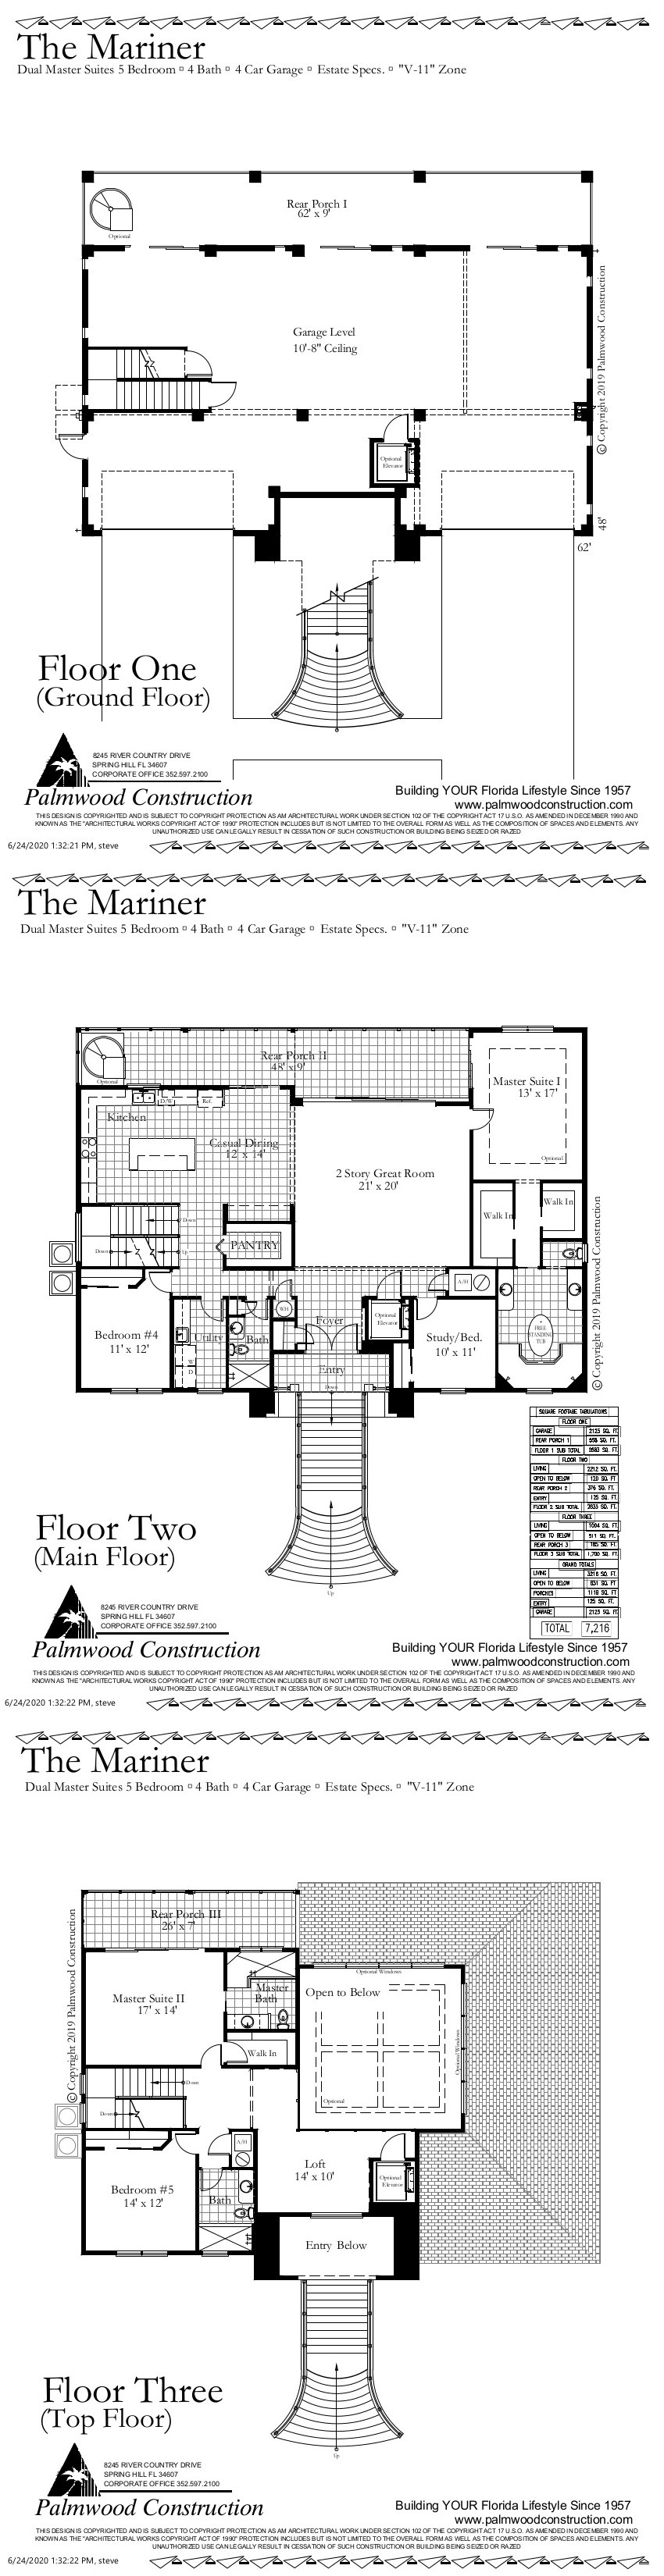 Mariner Floor Plan